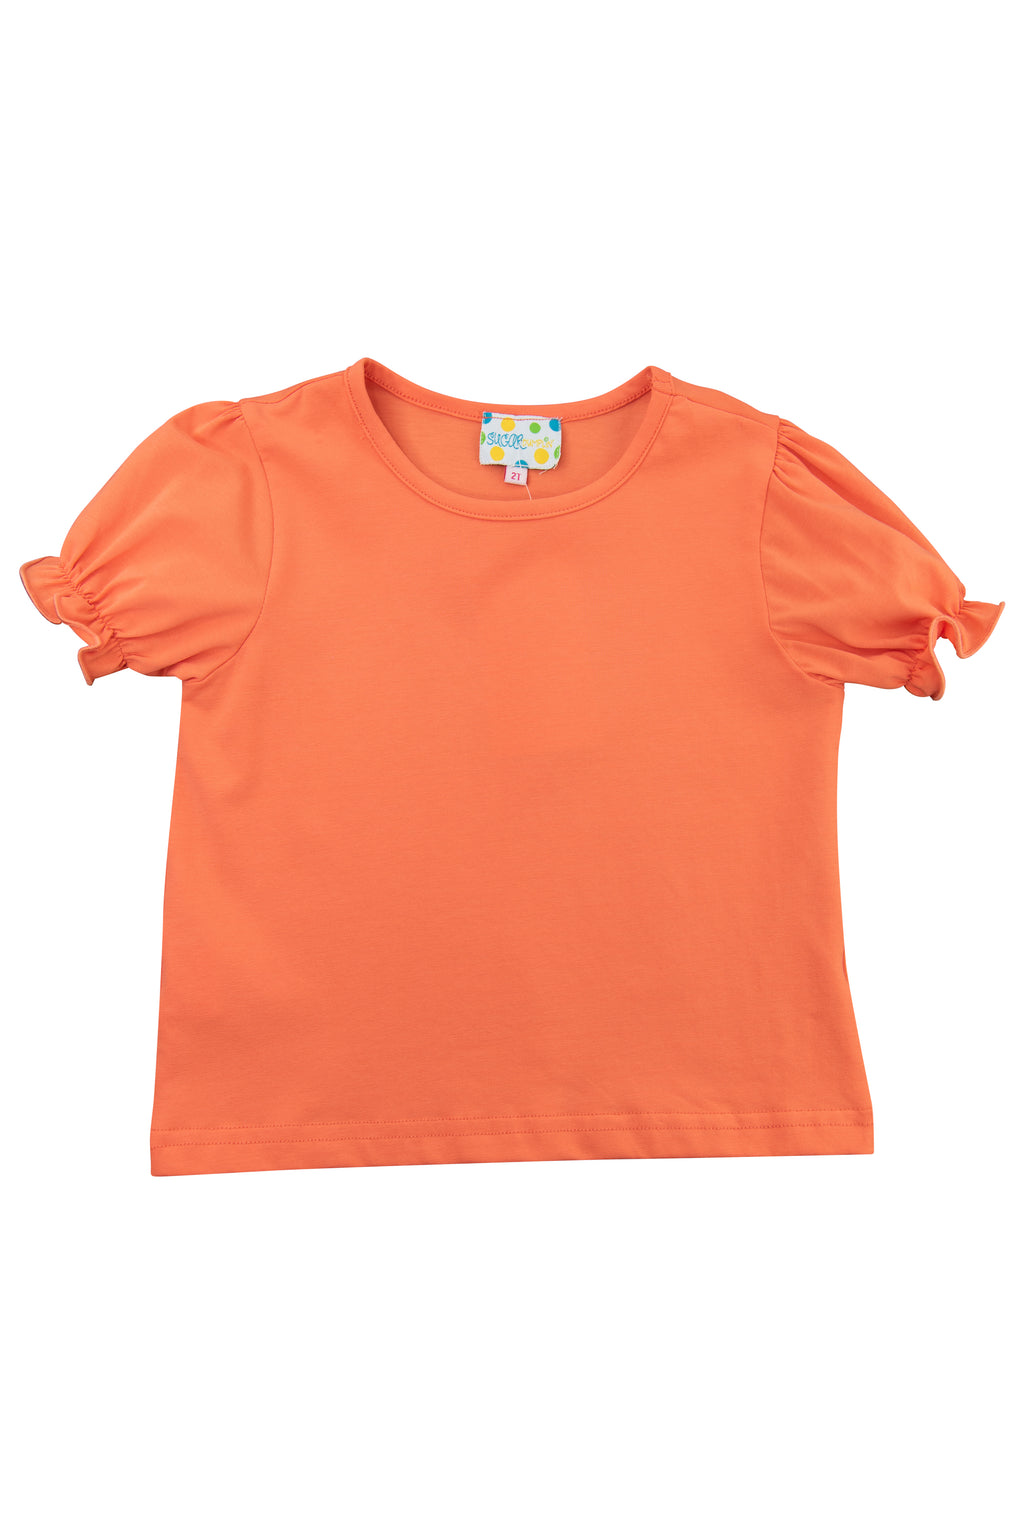 Girls Coral Shirt Only